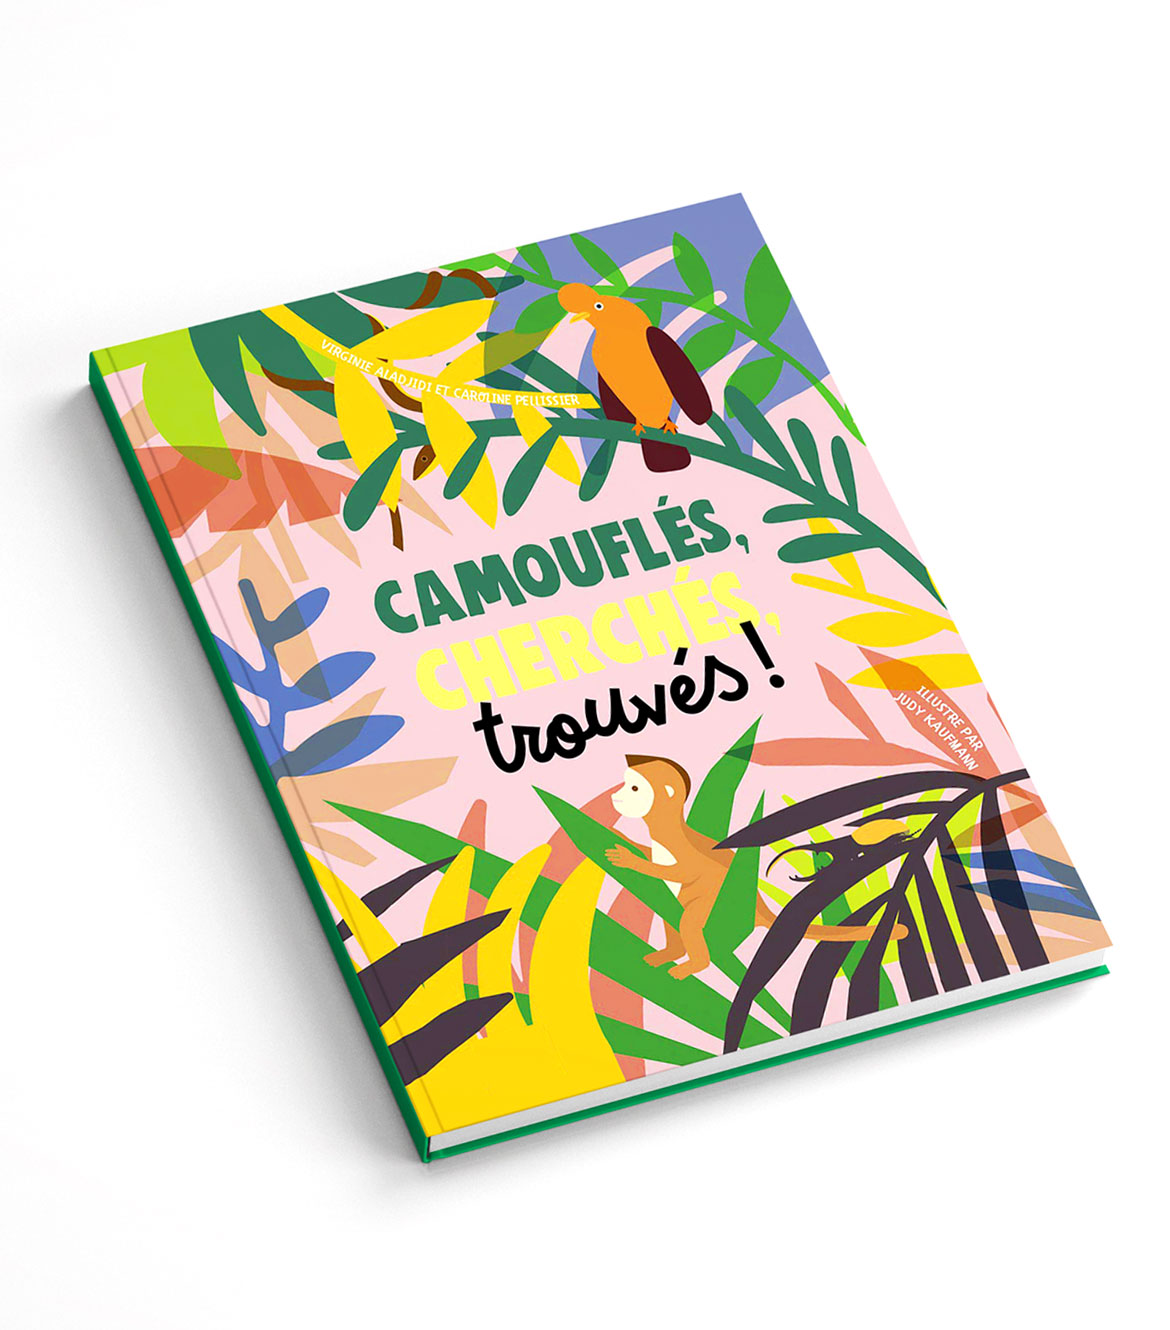 camoufles-cover-final